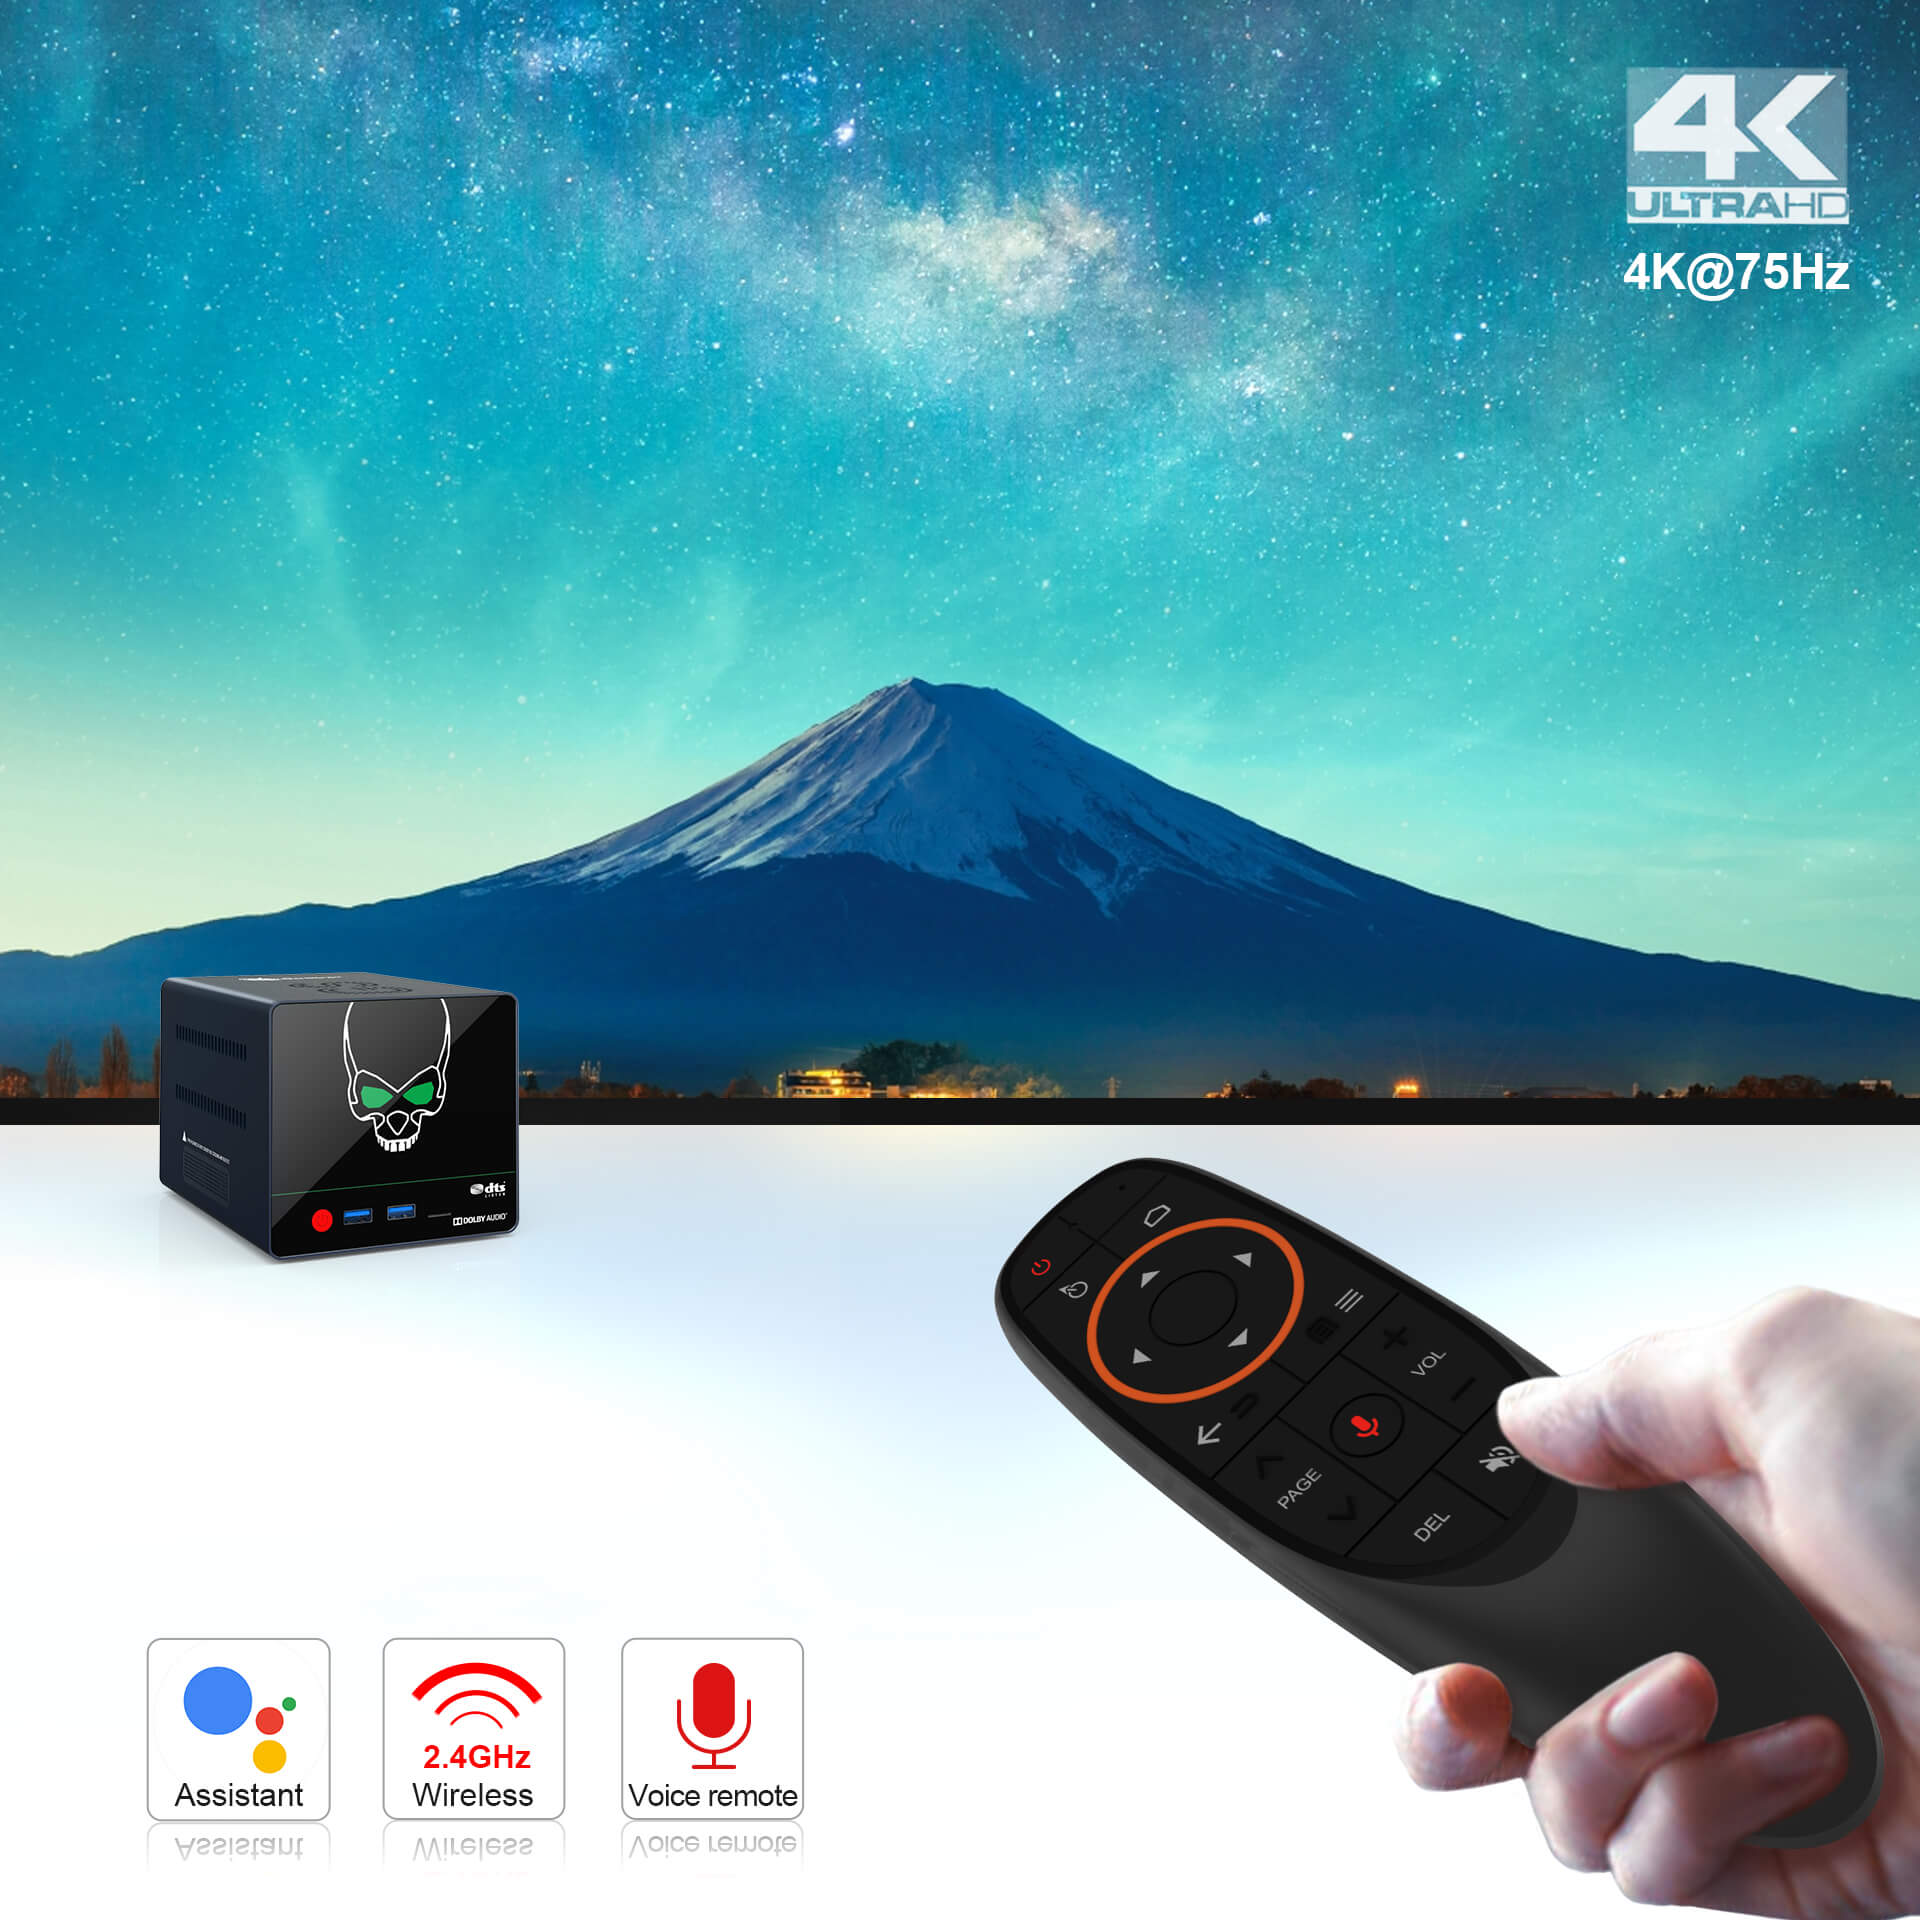 Beelink GS-King X S922X-H Android 9.0 Powerful TV Box 4/64G with NAS Dolby DTS HIFI 4K Support HDD Expansion 8